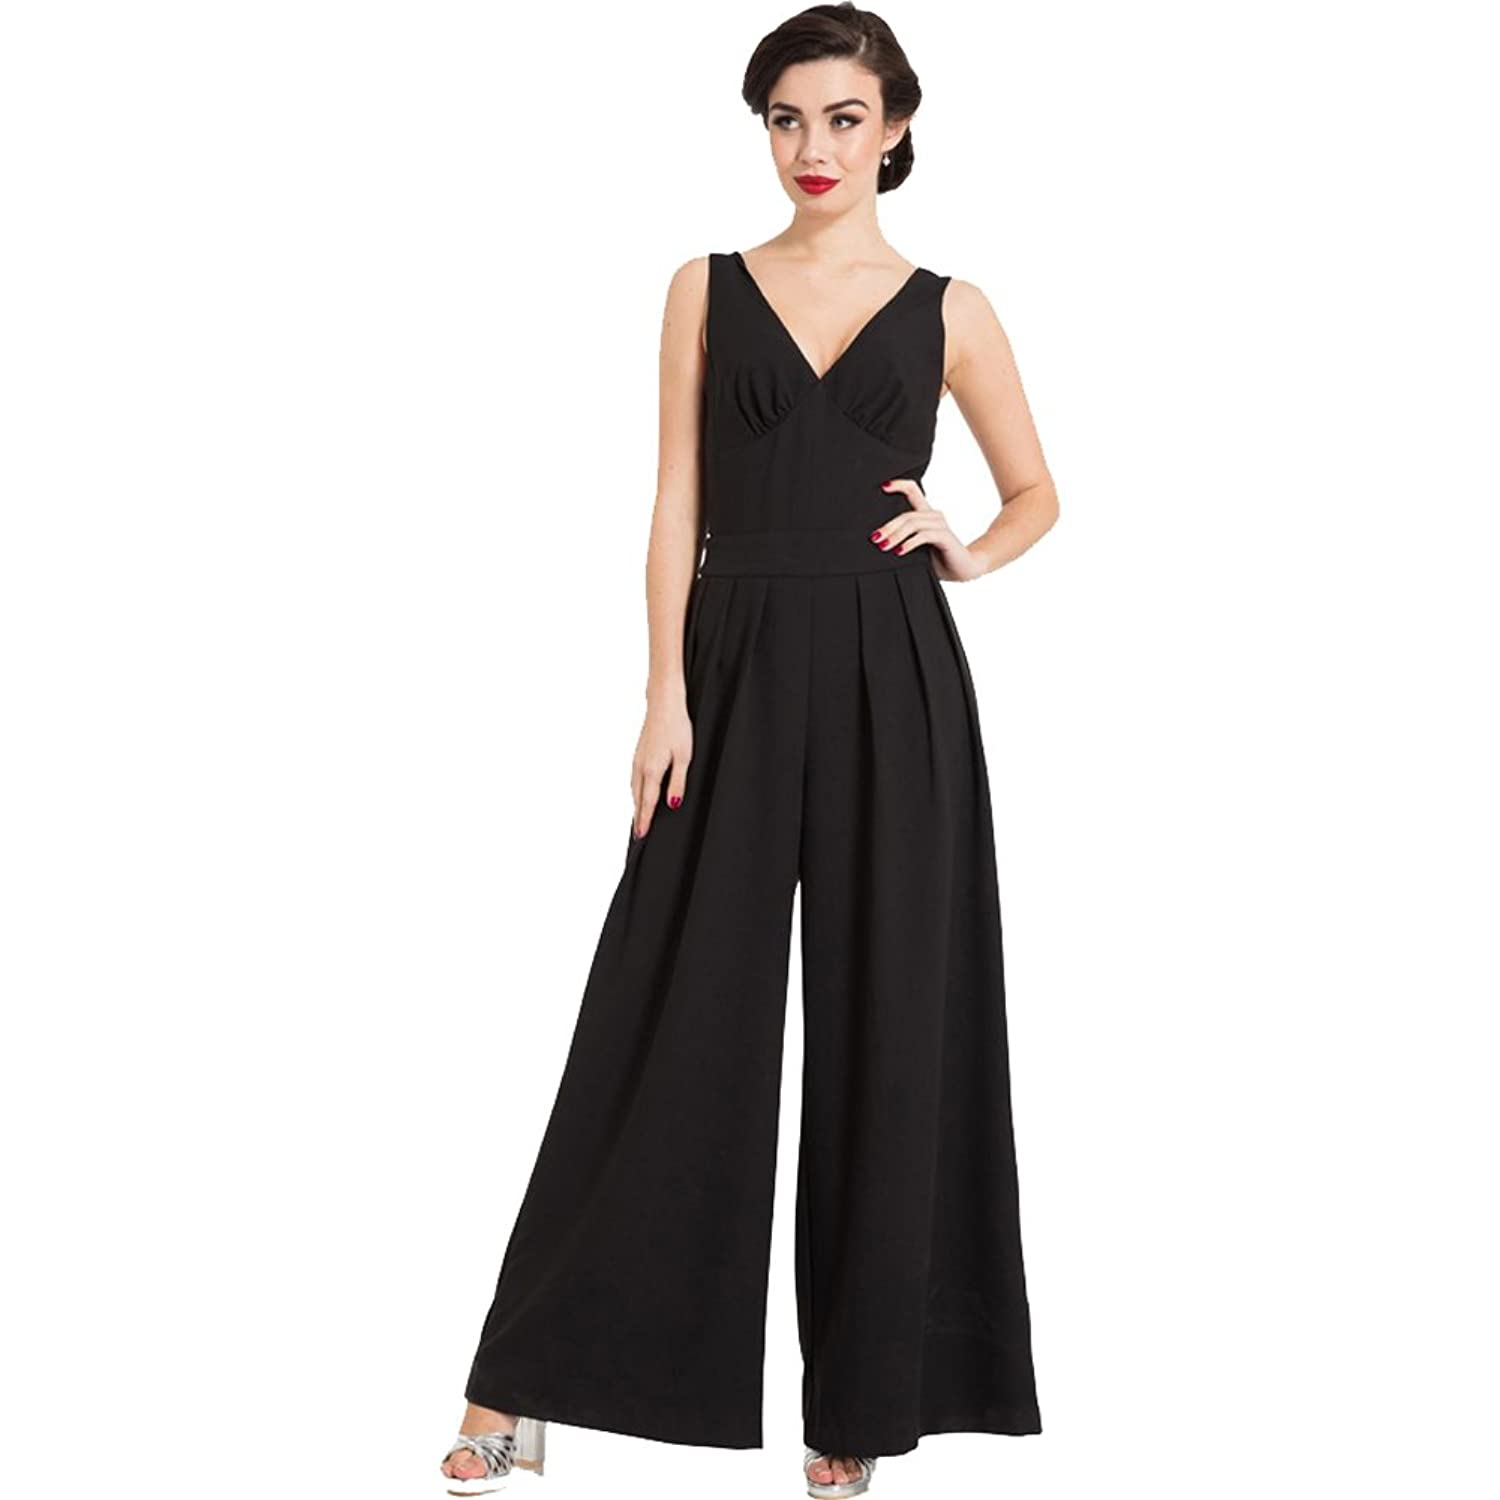 Vintage High Waisted Trousers, Sailor Pants, Jeans Voodoo Vixen Womens Farah Flared Jumpsuit Black $77.99 AT vintagedancer.com